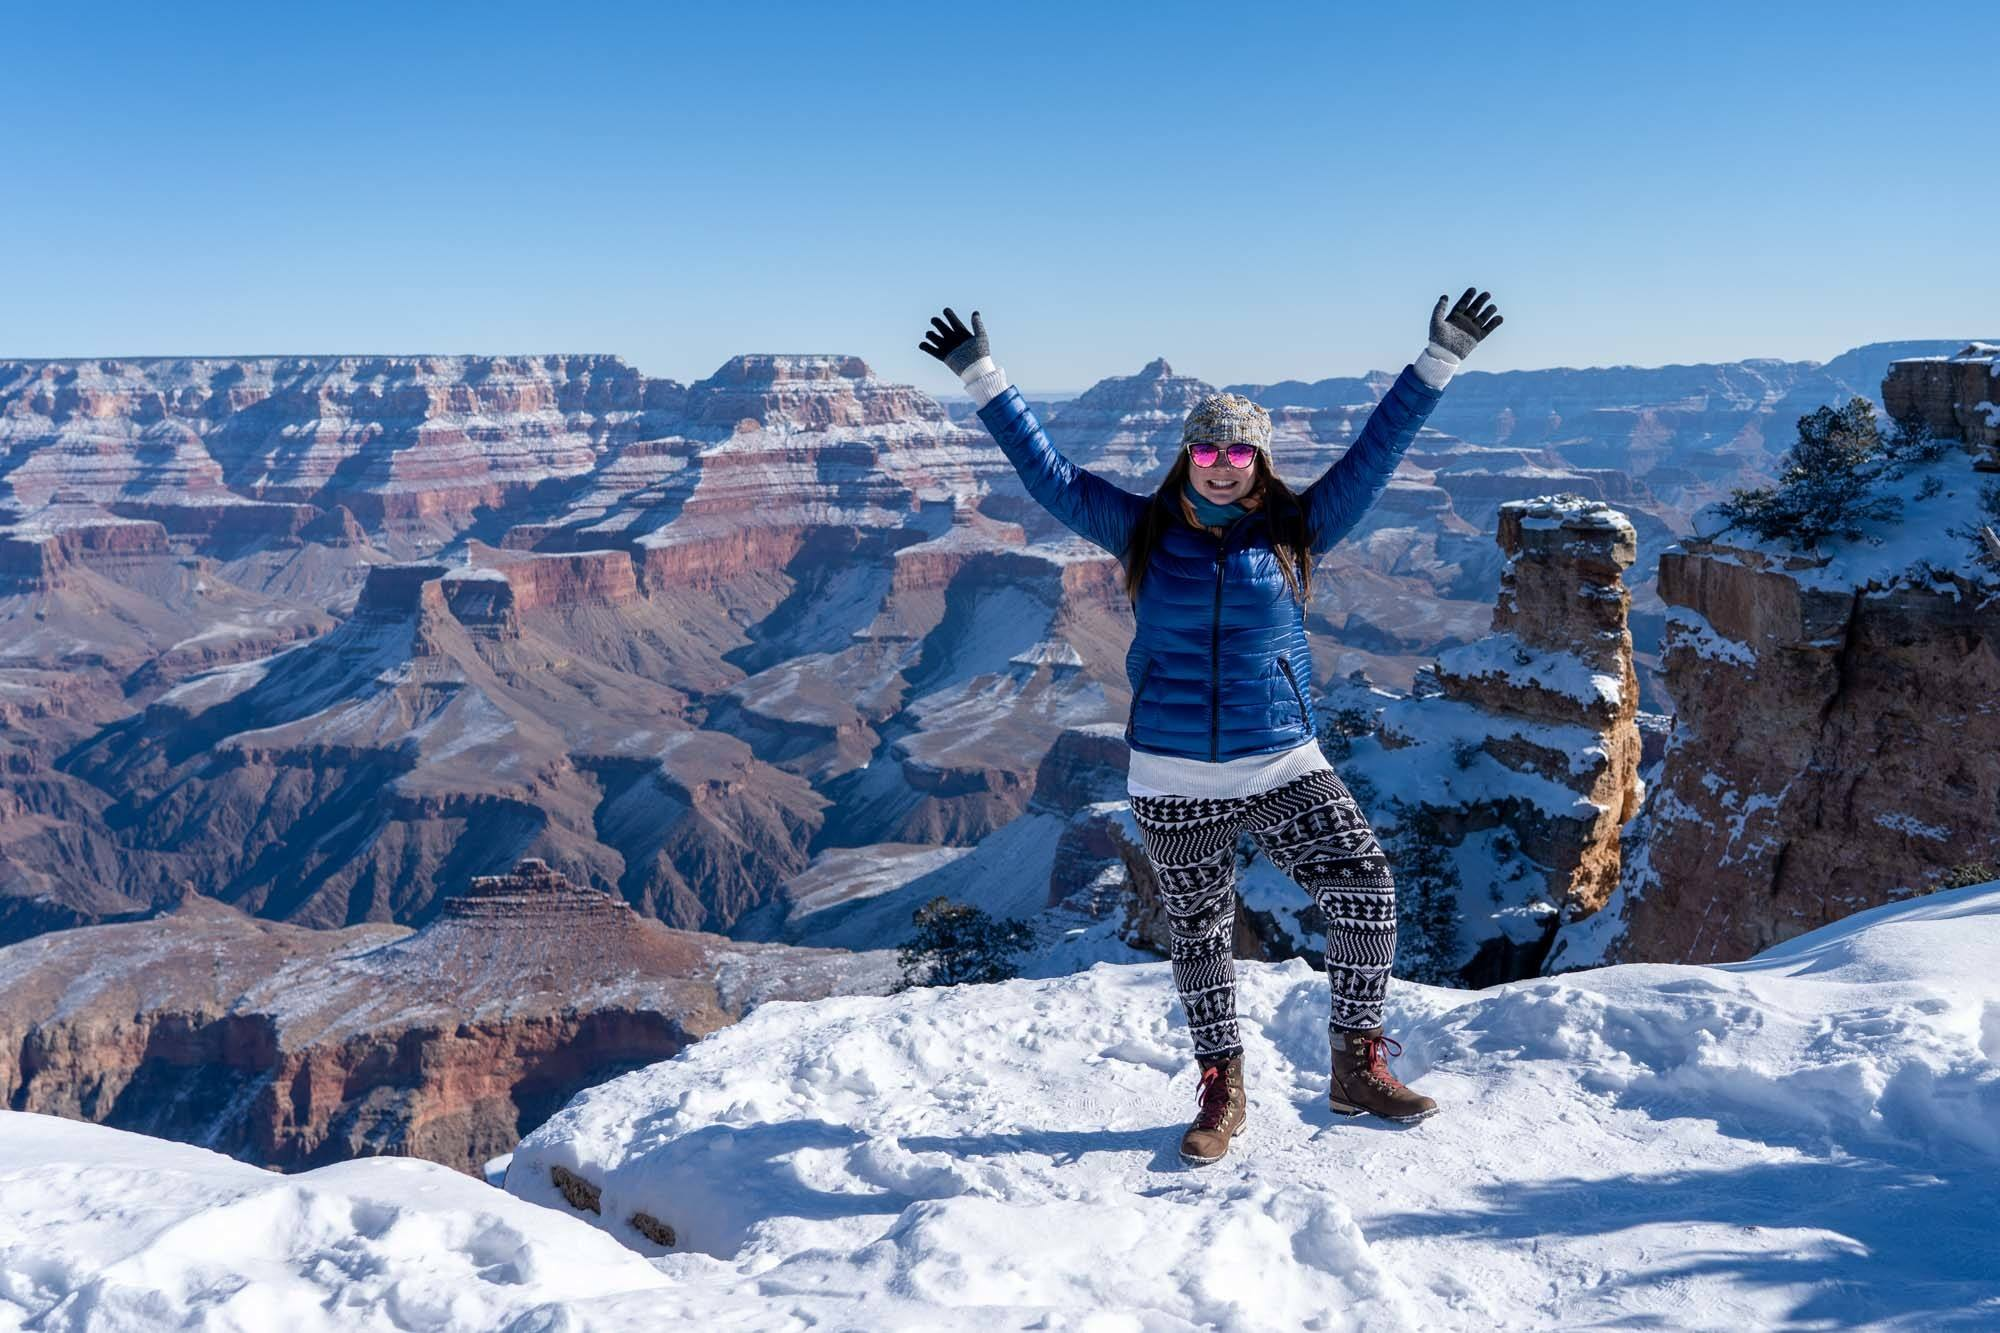 Grand Canyon viewpoint in winter